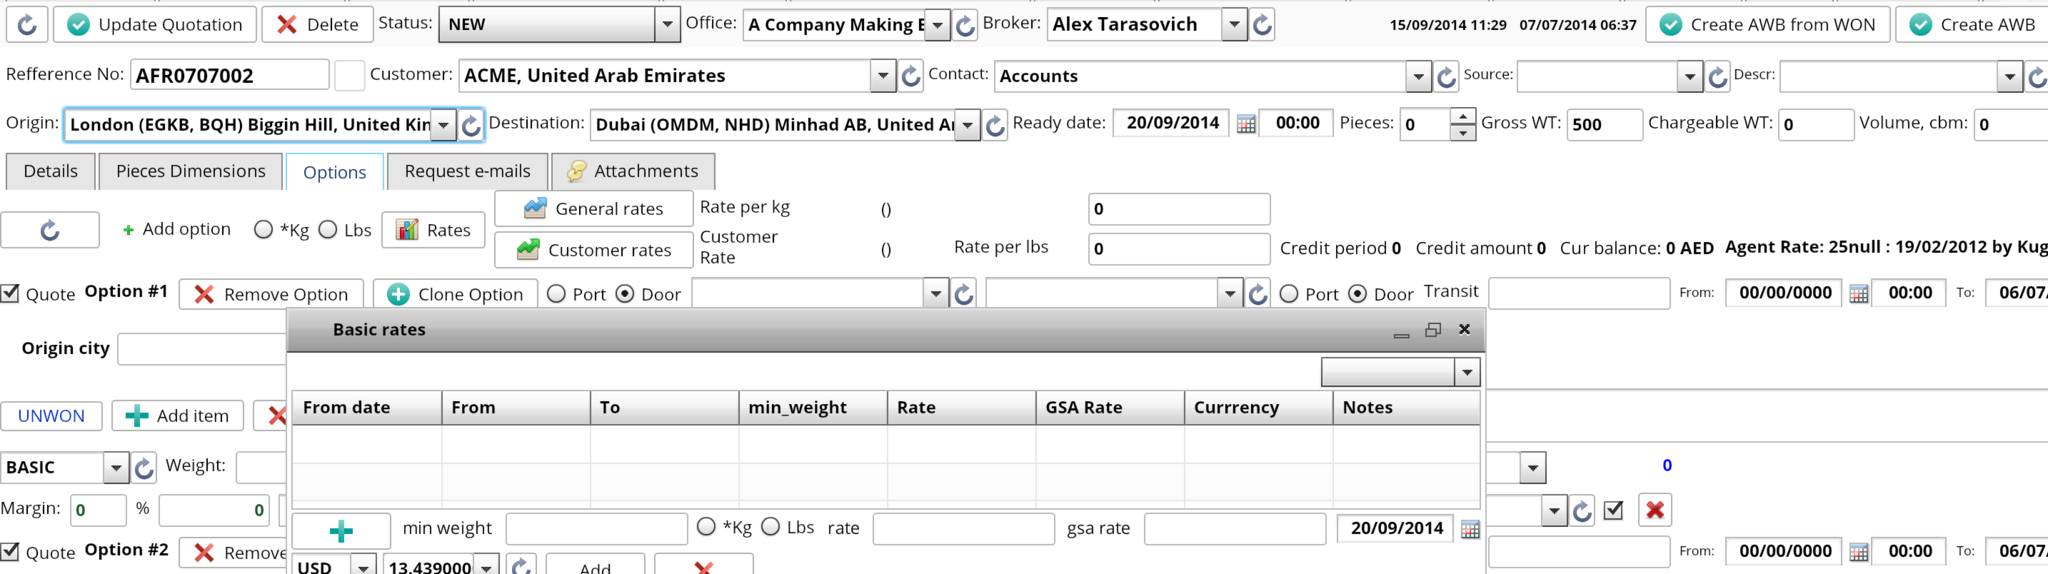 Cargo quotation creation interface